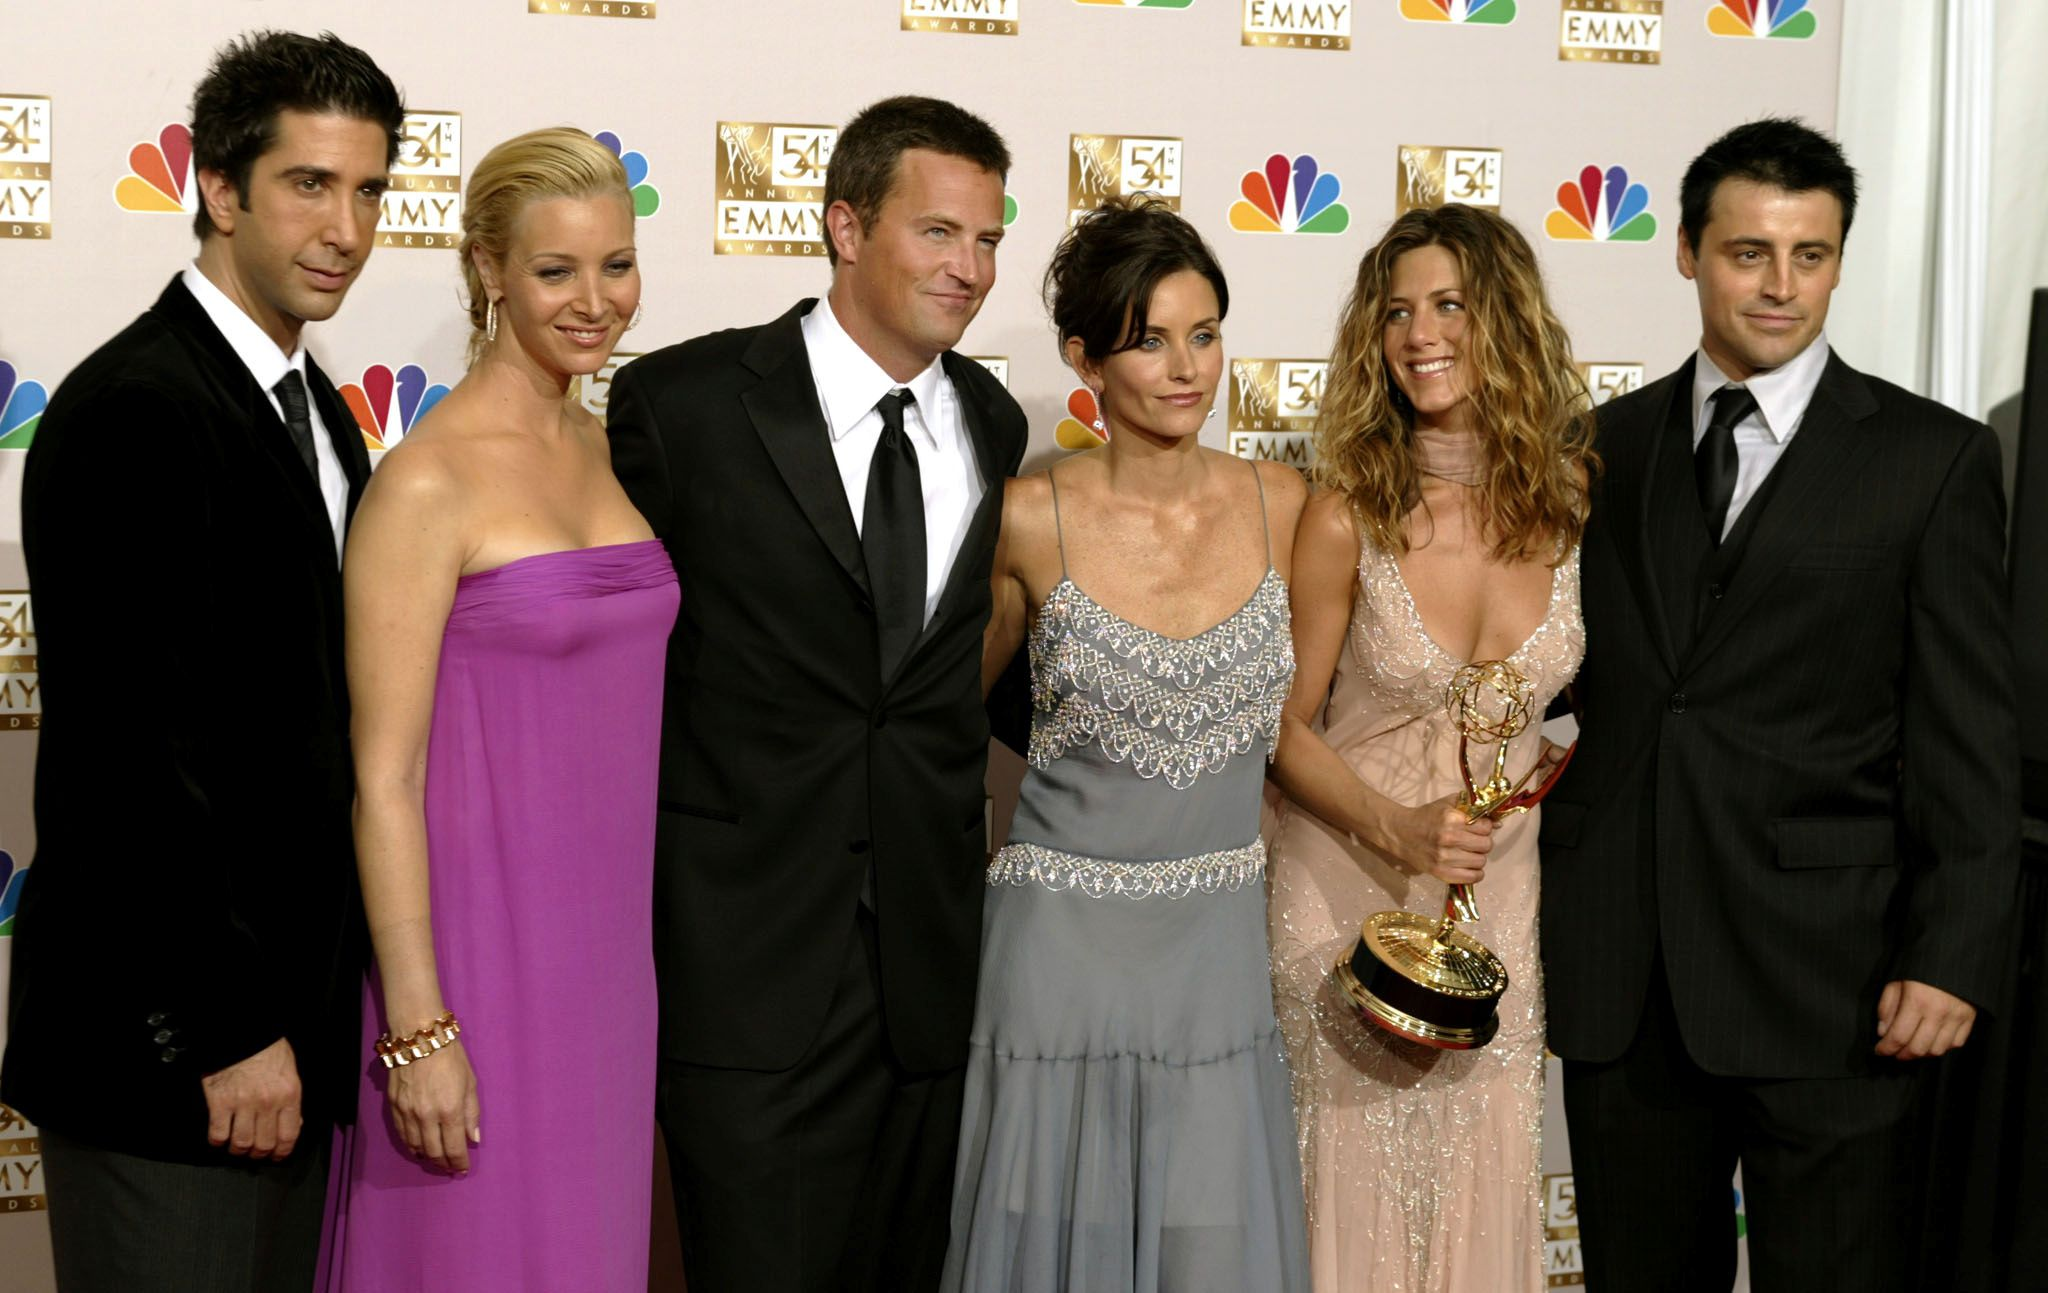 """FILE PHOTO: FILE PHOTO: The cast of """"Friends"""" appears in the photo room at the 54th annual Emmy Awards in Los Angeles September 22, 2002. From the left are, David Schwimmer, Lisa Kudrow, Matthew Perry, Courteney Cox Arquette, Jennifer Aniston and Matt LeBlanc. REUTERS/Mike Blake/File Photo/File Photo"""